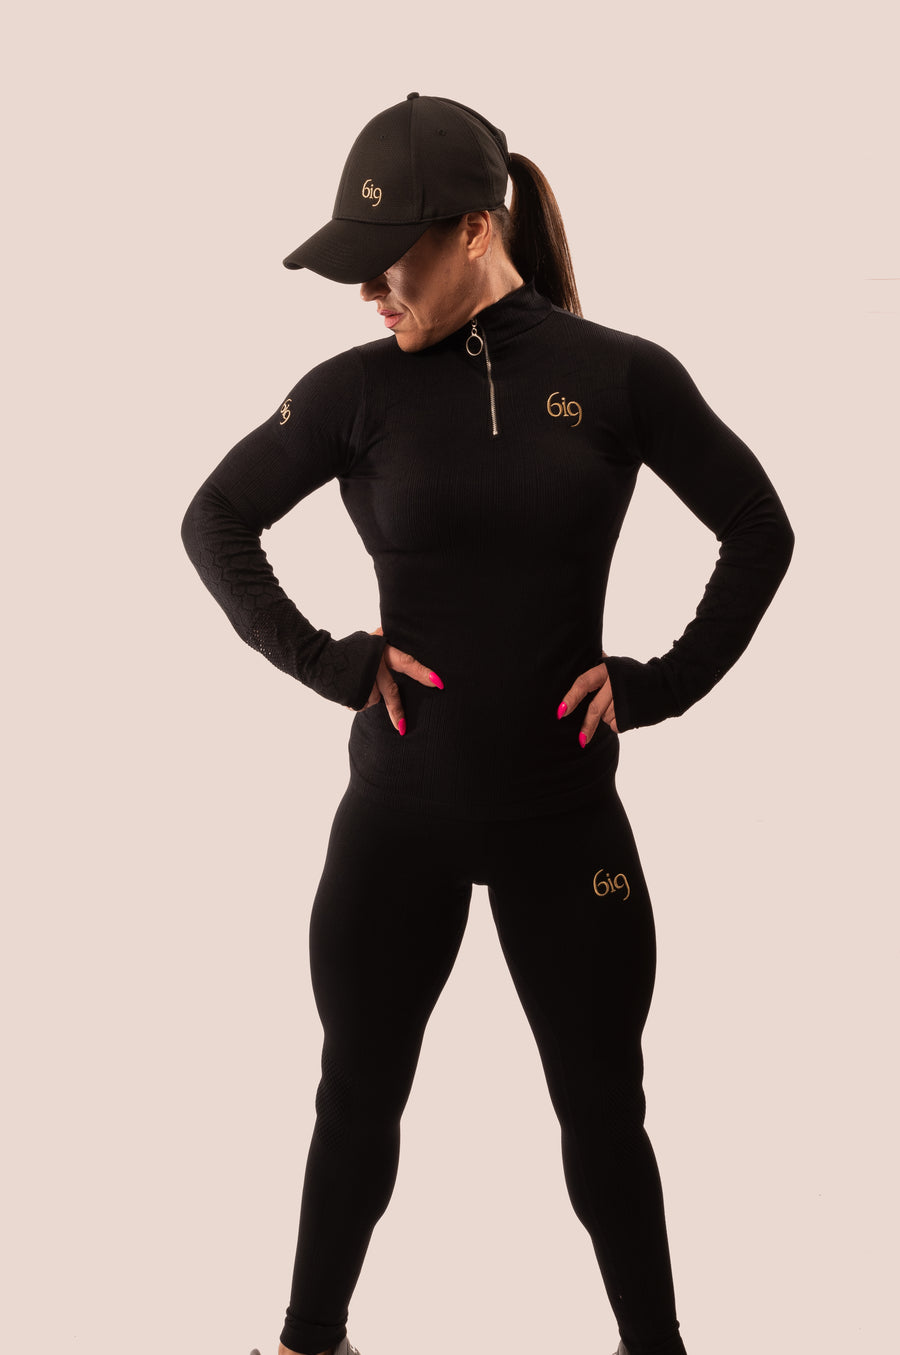 Black & Gold 1/4 Zip Jersey - BIG Gymwear Ltd